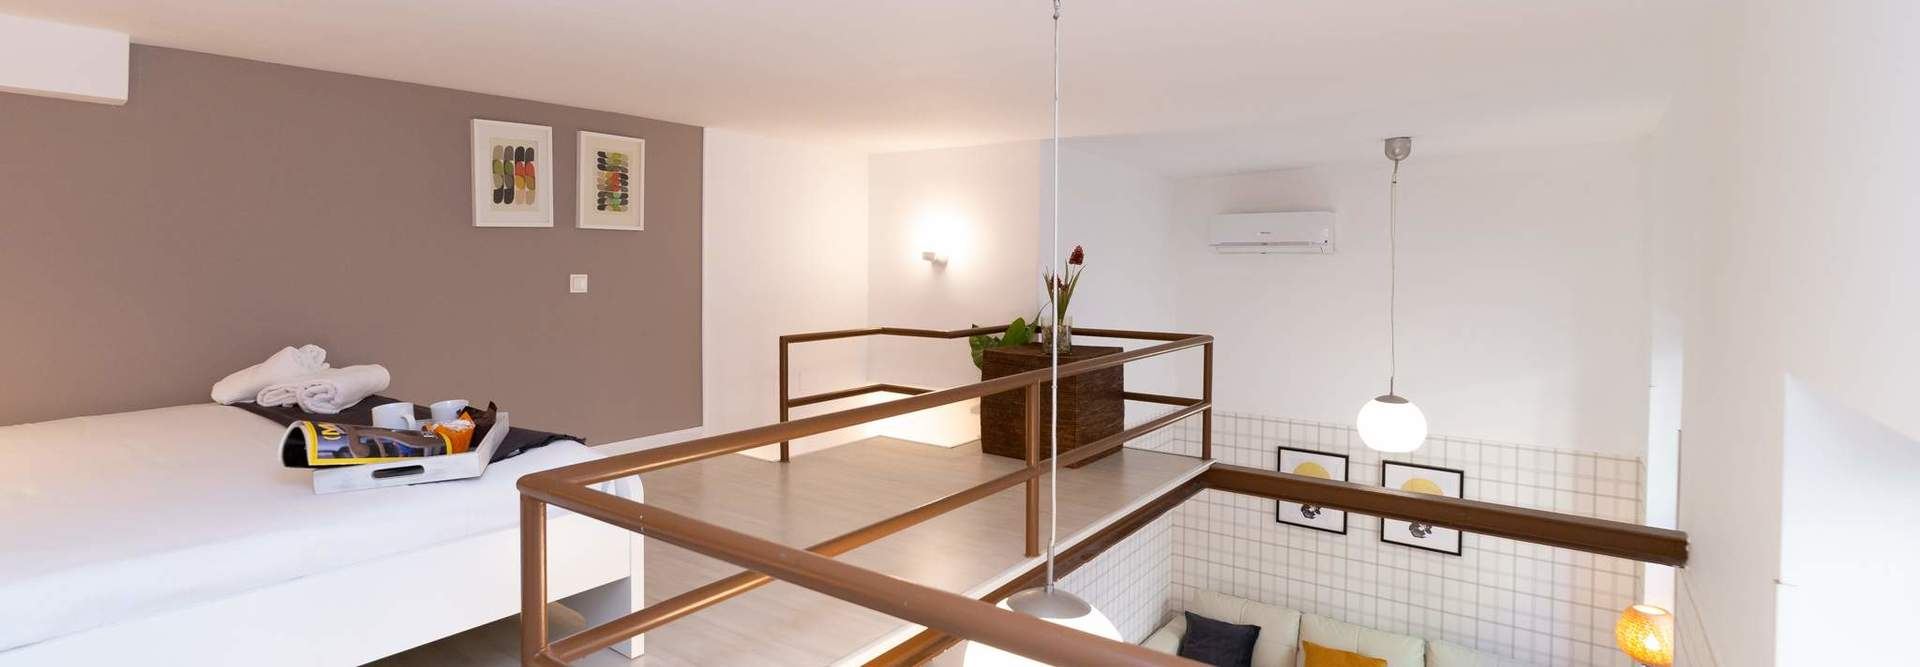 Home alquiler apartamentos madrid mad4rent 13